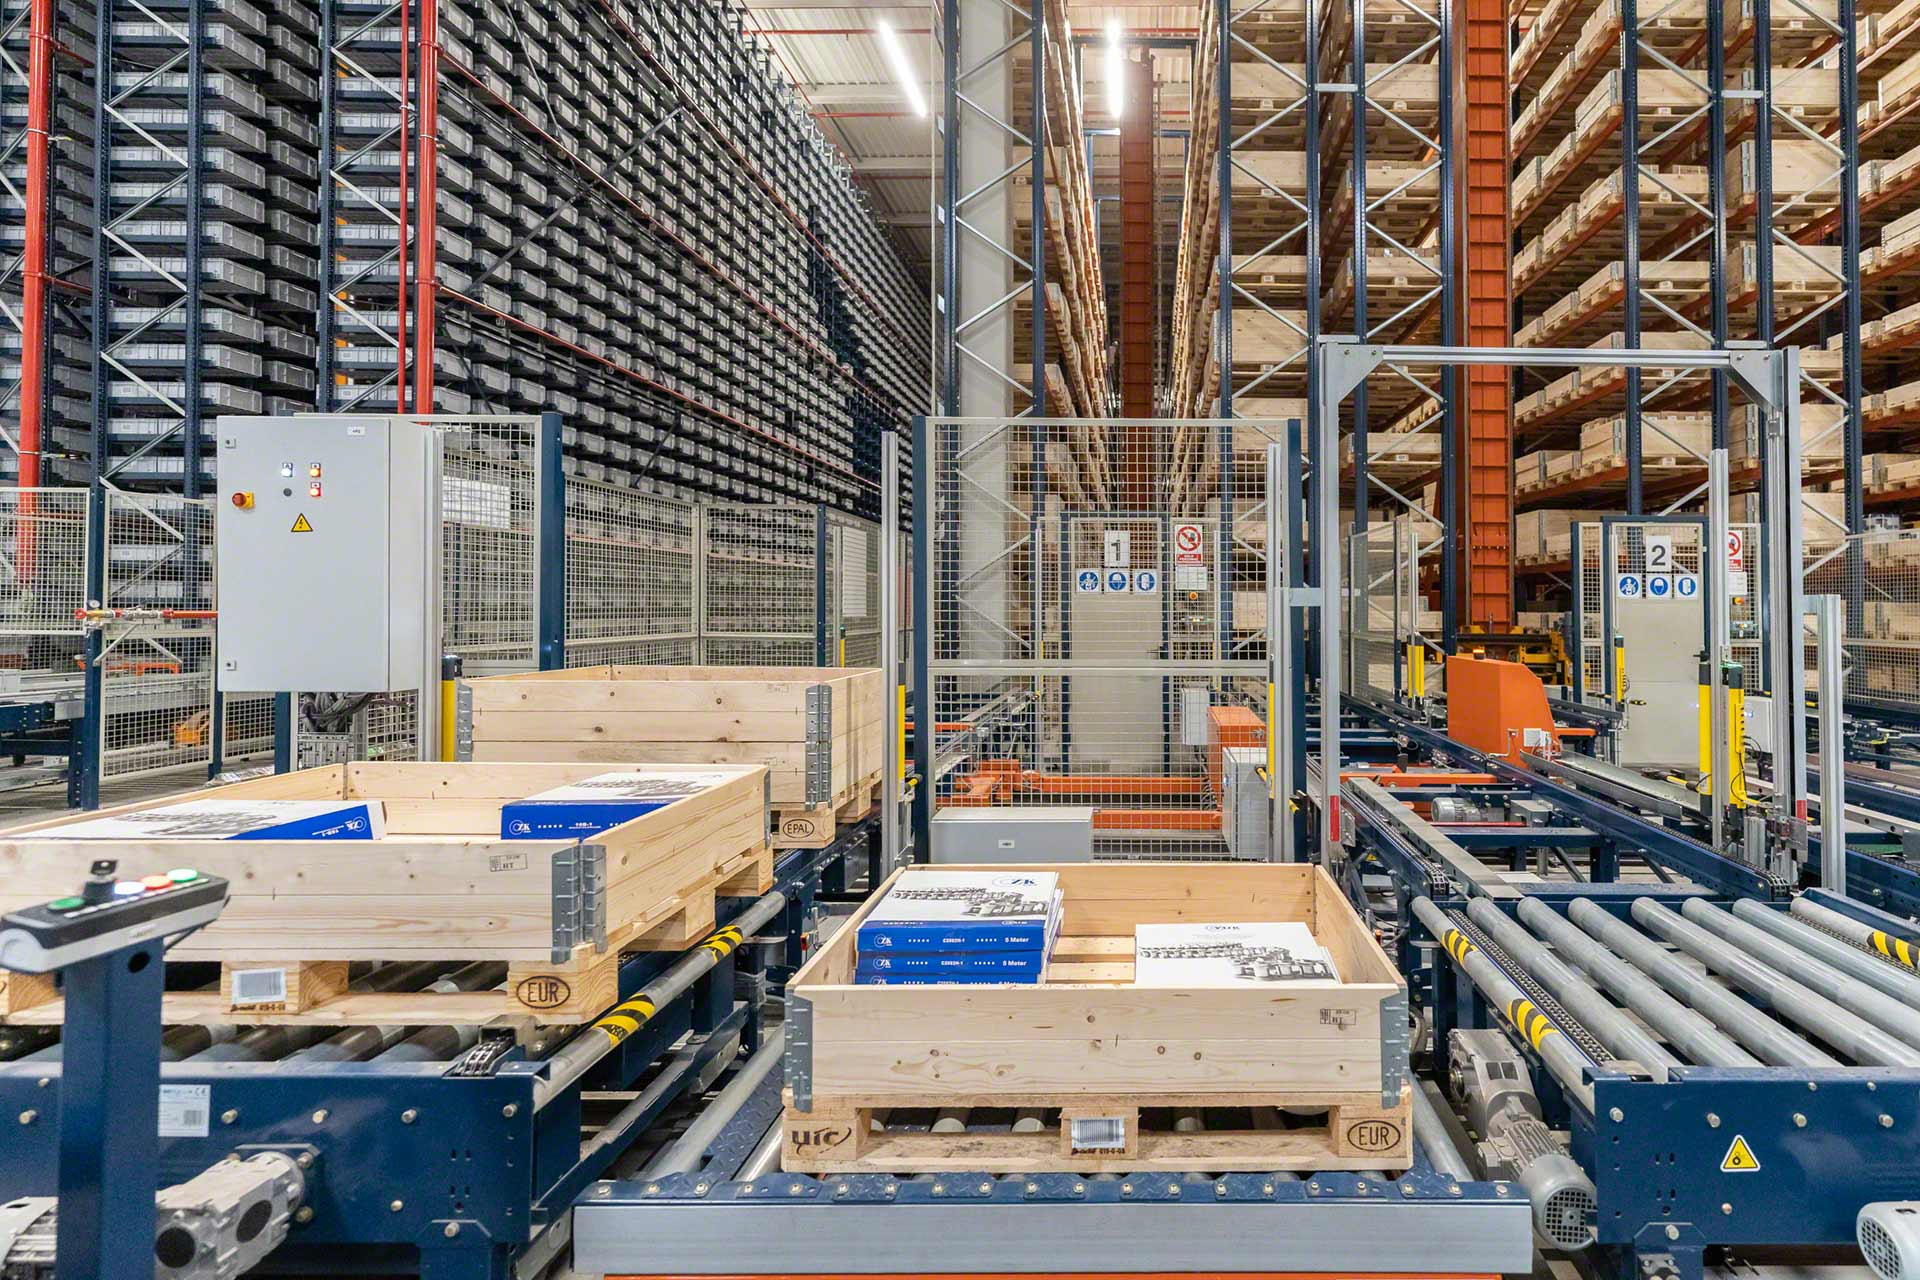 Automated storage and retrieval systems boost business efficiency